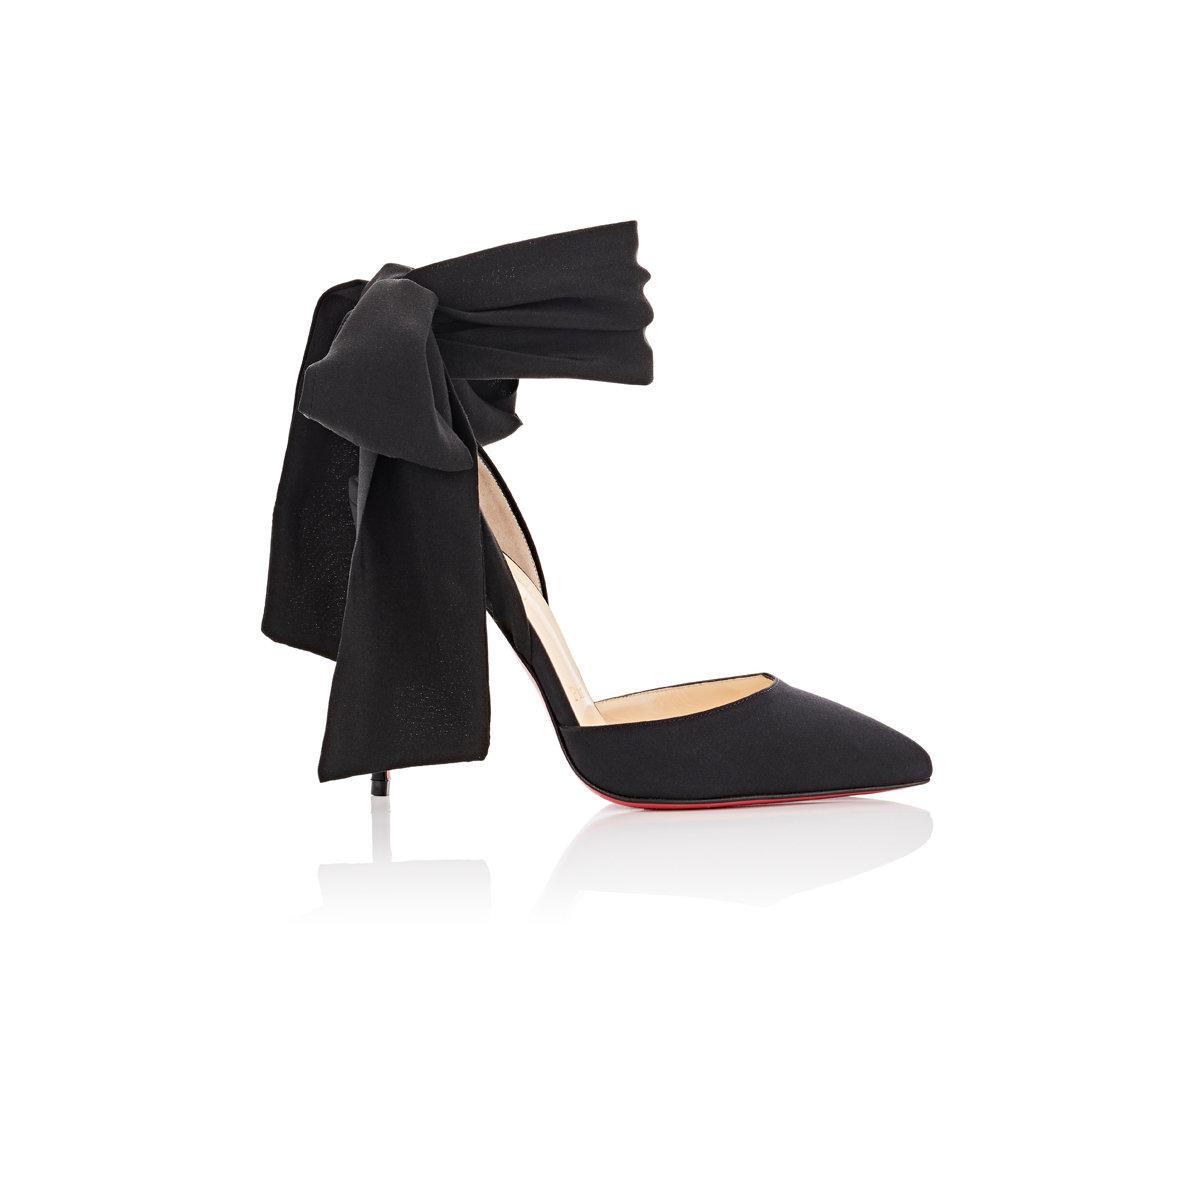 a79301bf5e1 ... code for lyst christian louboutin douce du desert crepe de chine pumps  in black 60548 official store christian louboutin dovi dova knit red sole  booties ...